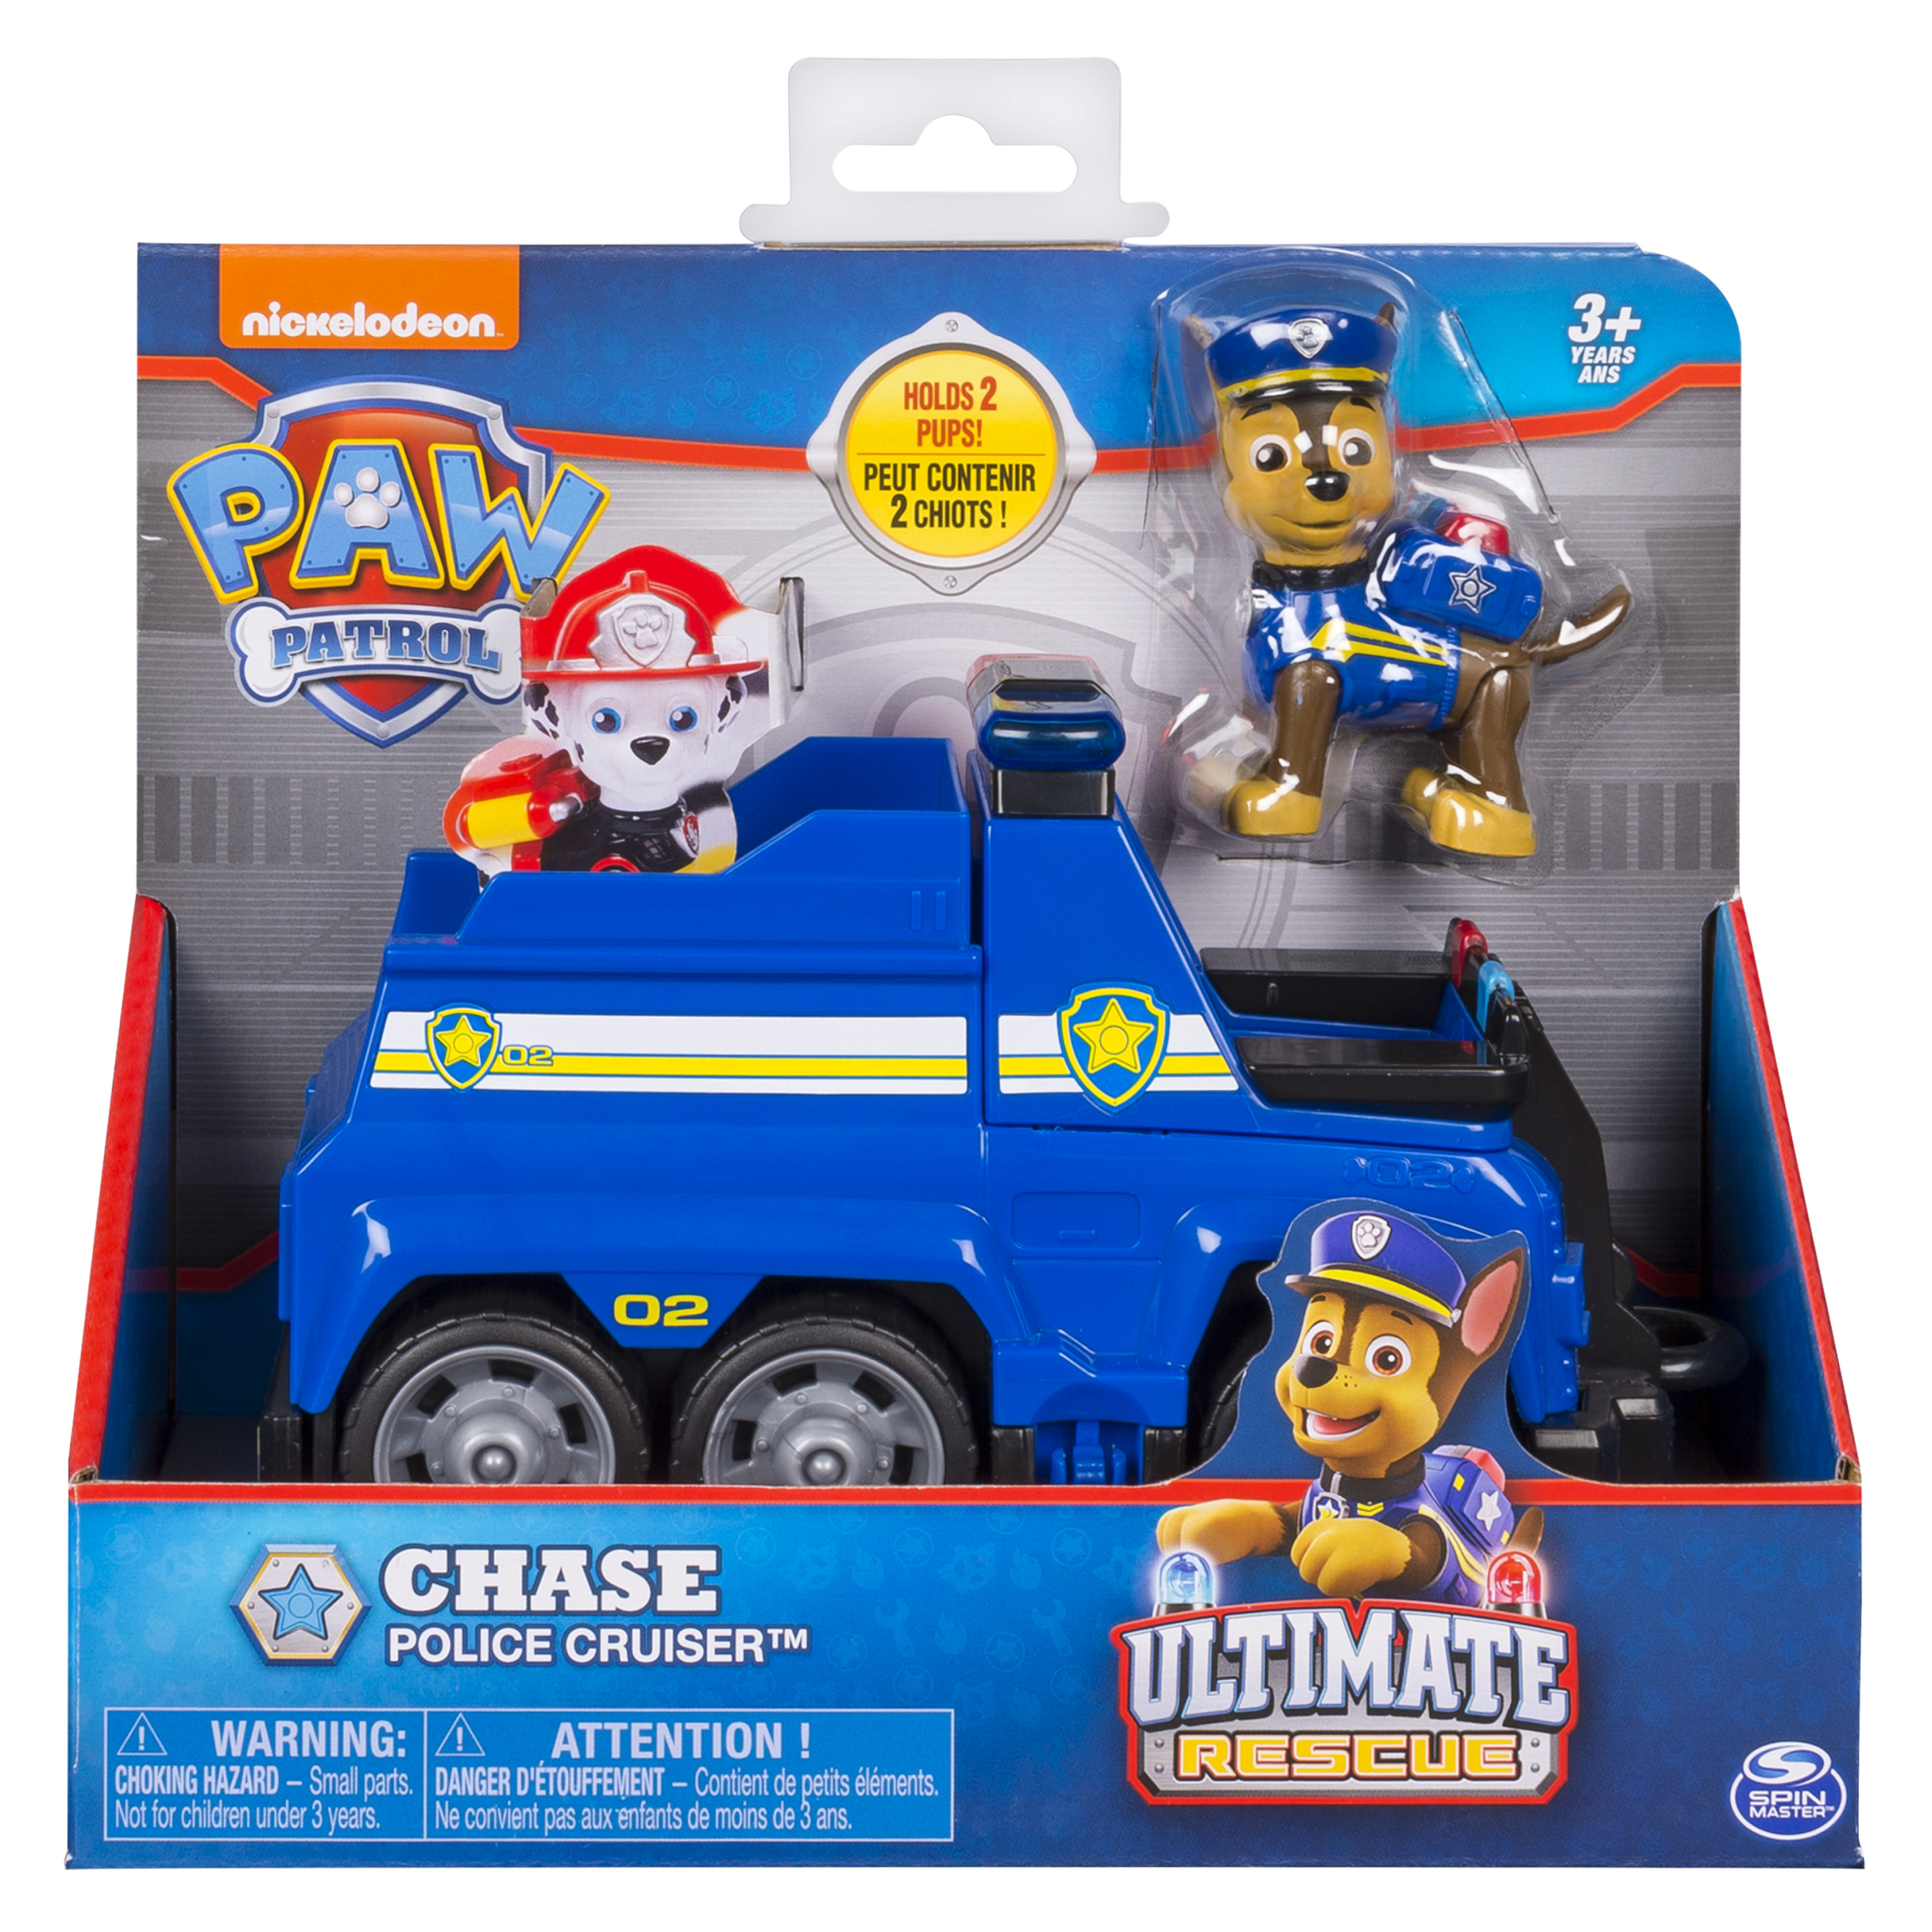 PAW Patrol Ultimate Rescue, Chases Ultimate Rescue Police Cruiser with Lifting Seat and Fold-out Barricade,... by Spin Master Ltd